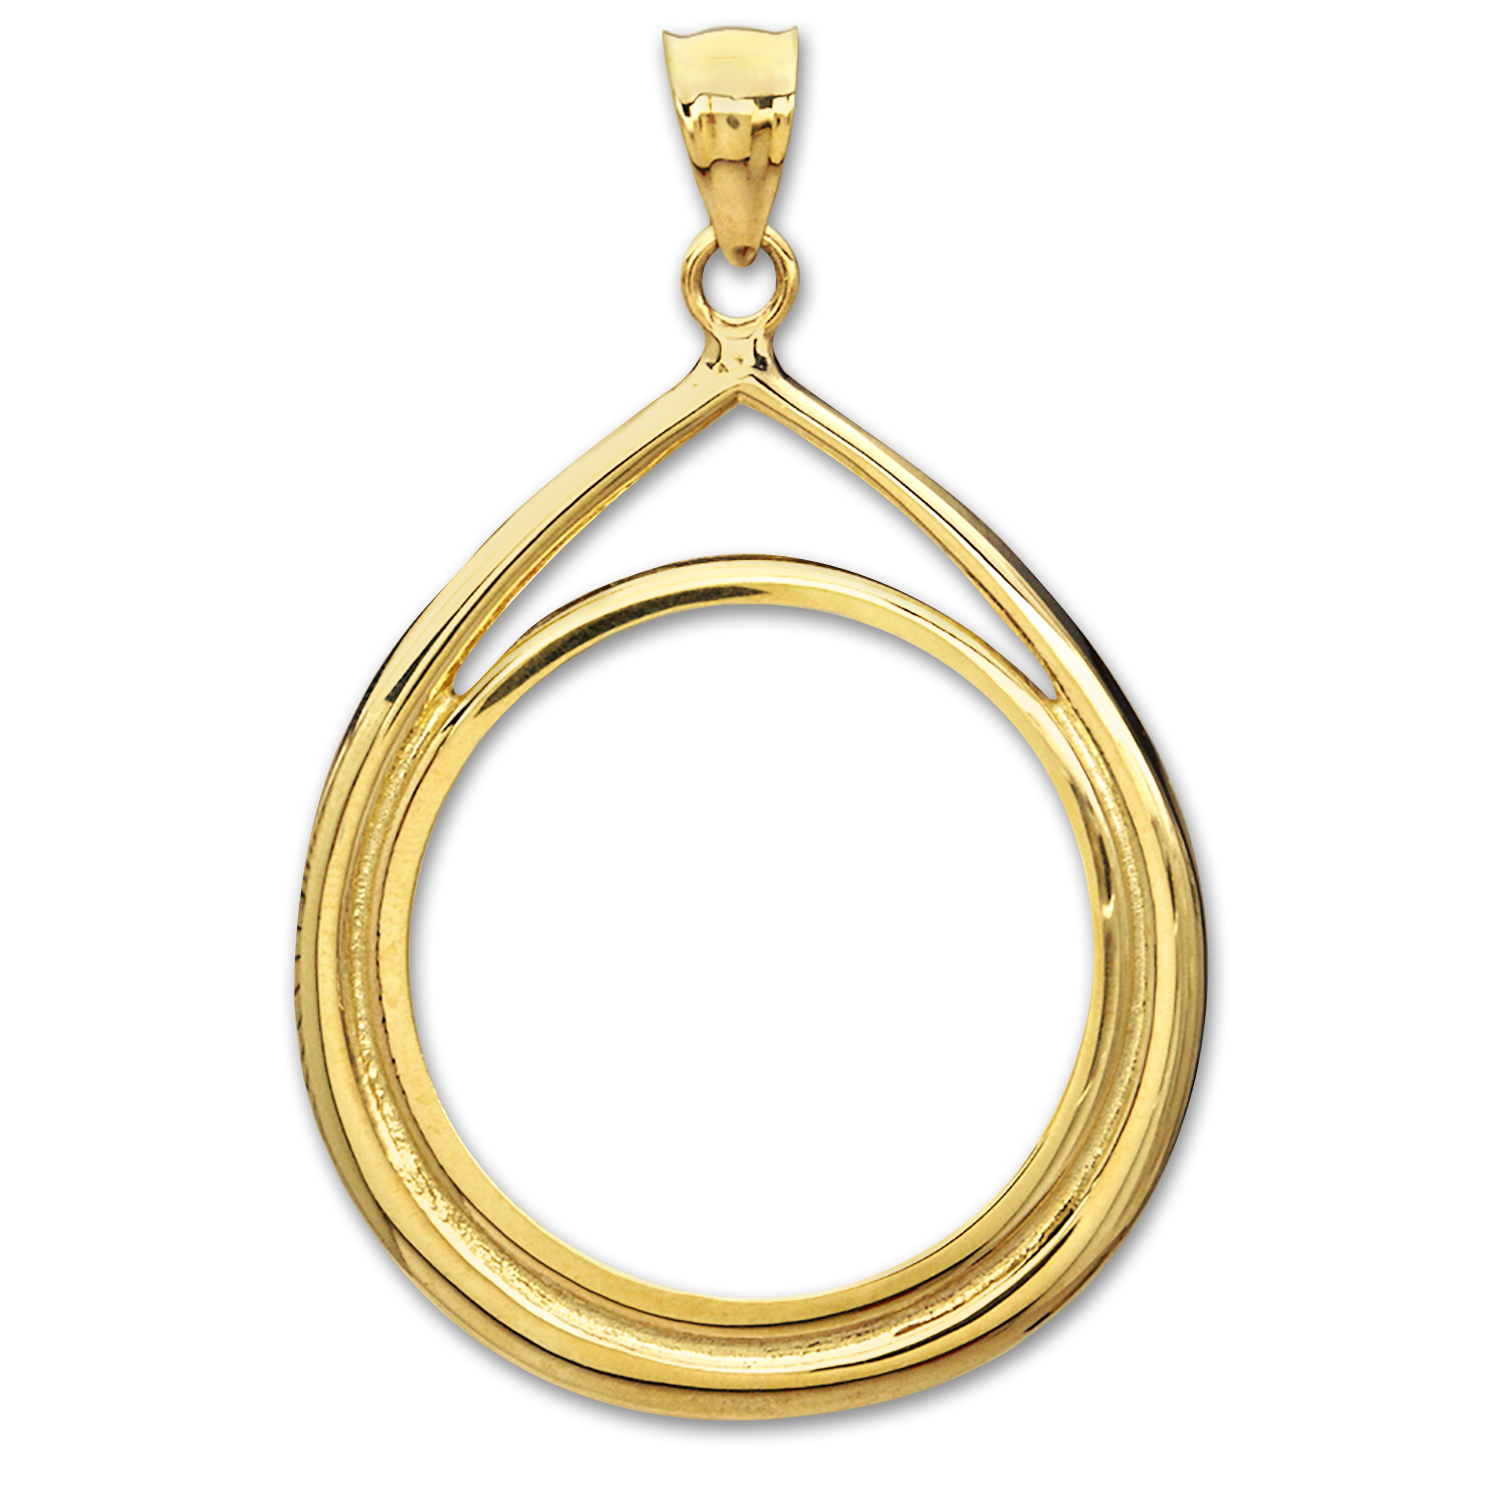 14K Gold Prong Tear Drop Coin Bezel - 32 mm